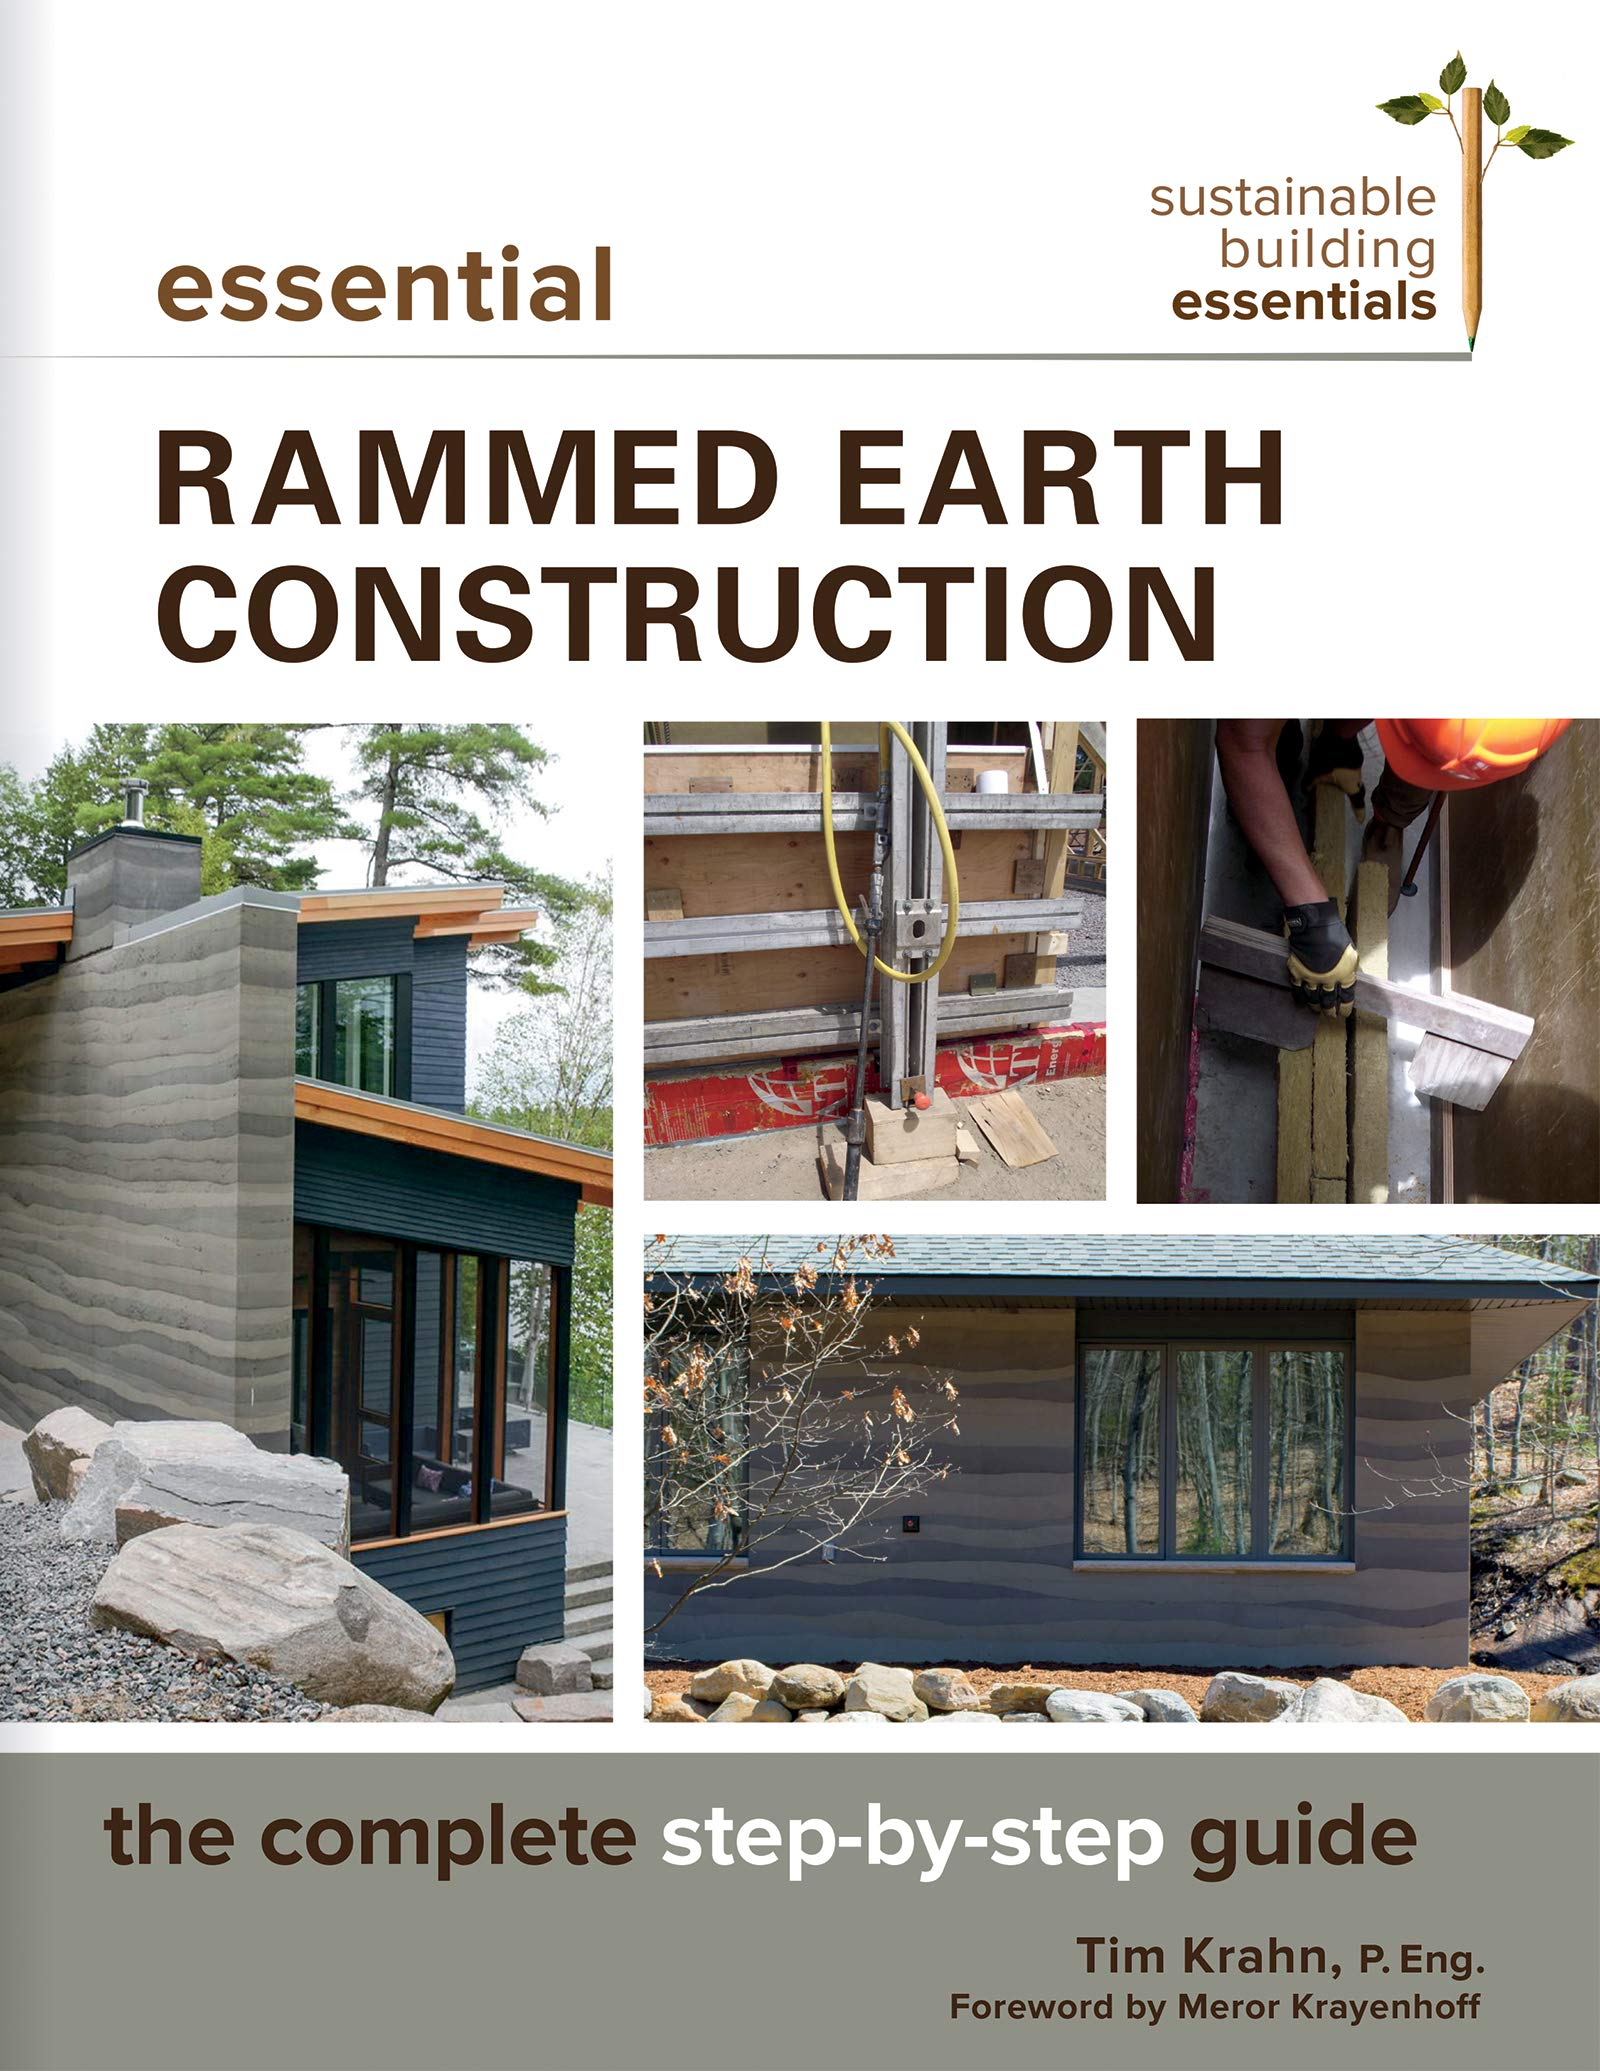 Essential Rammed Earth Construction: The Complete Step-by ... on prefab house floor plan, sod house floor plan, design house floor plan, studio house floor plan, green house floor plan, floor house floor plan, metal house floor plan, iron house floor plan, wood house floor plan, steel frame house floor plan, contemporary house floor plan, brick house floor plan, passive house floor plan, shipping container house floor plan, cob house floor plan, stone house floor plan, earthbag house floor plan, tower house floor plan, sandstone house floor plan, barn house floor plan,